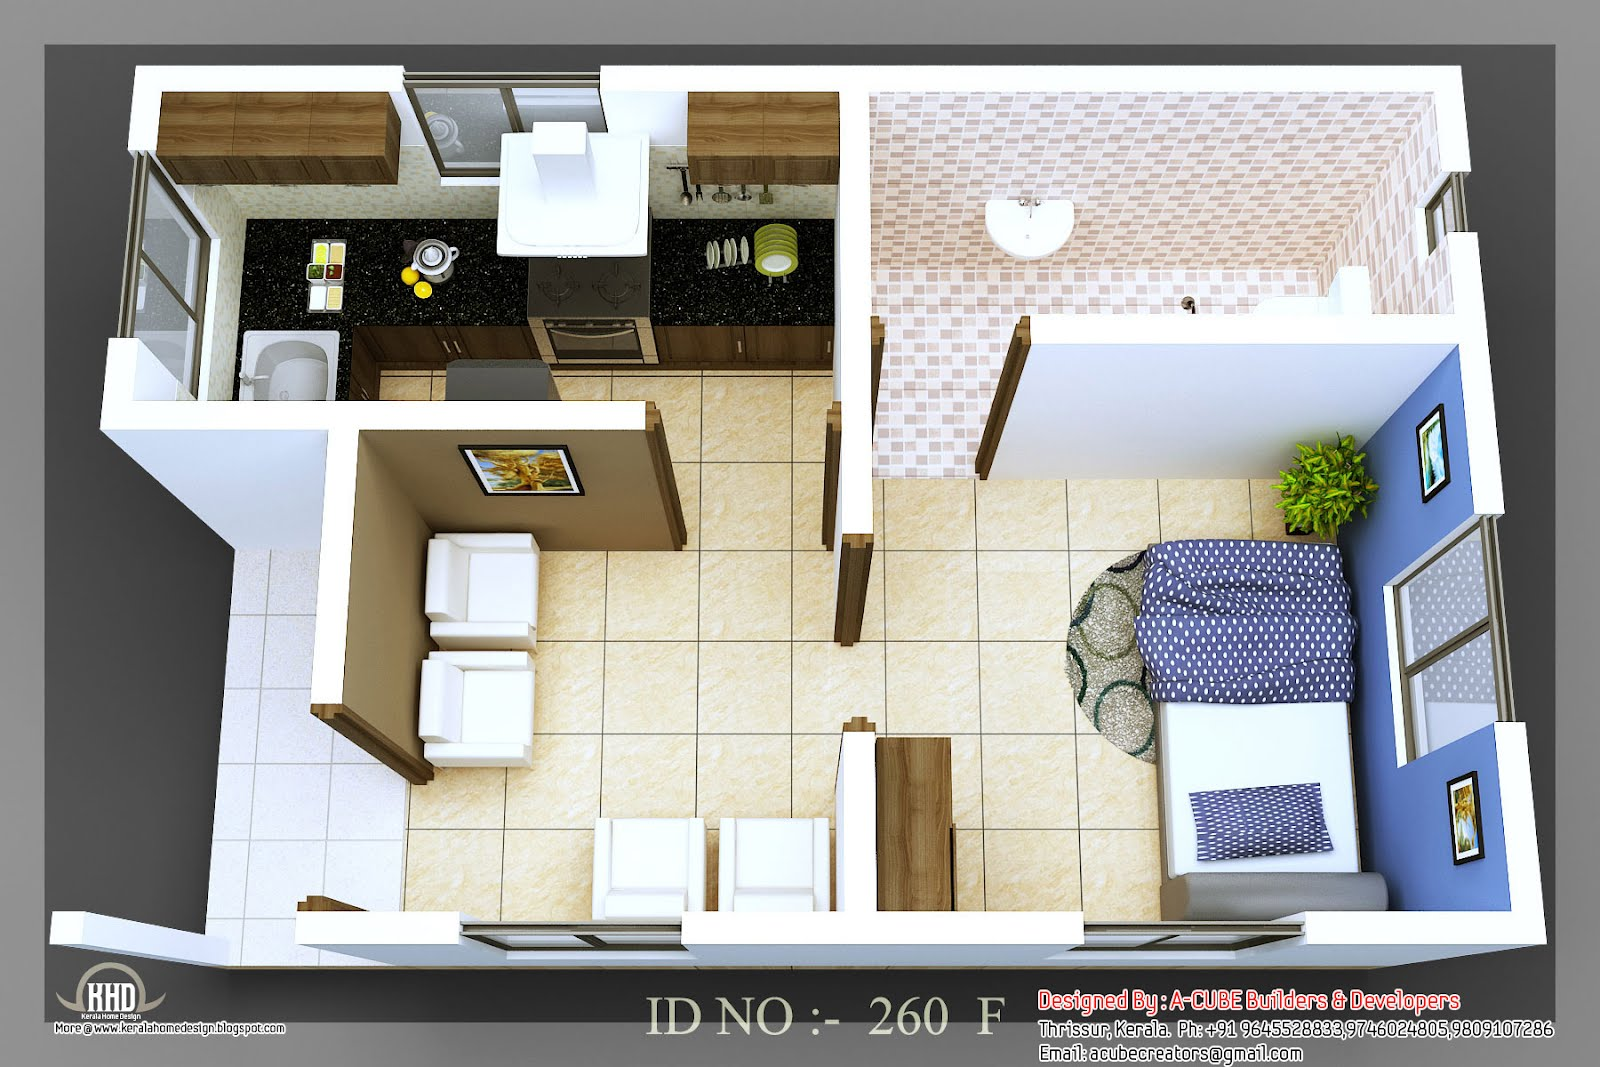 3d isometric views of small house plans home appliance for Small house floor plans